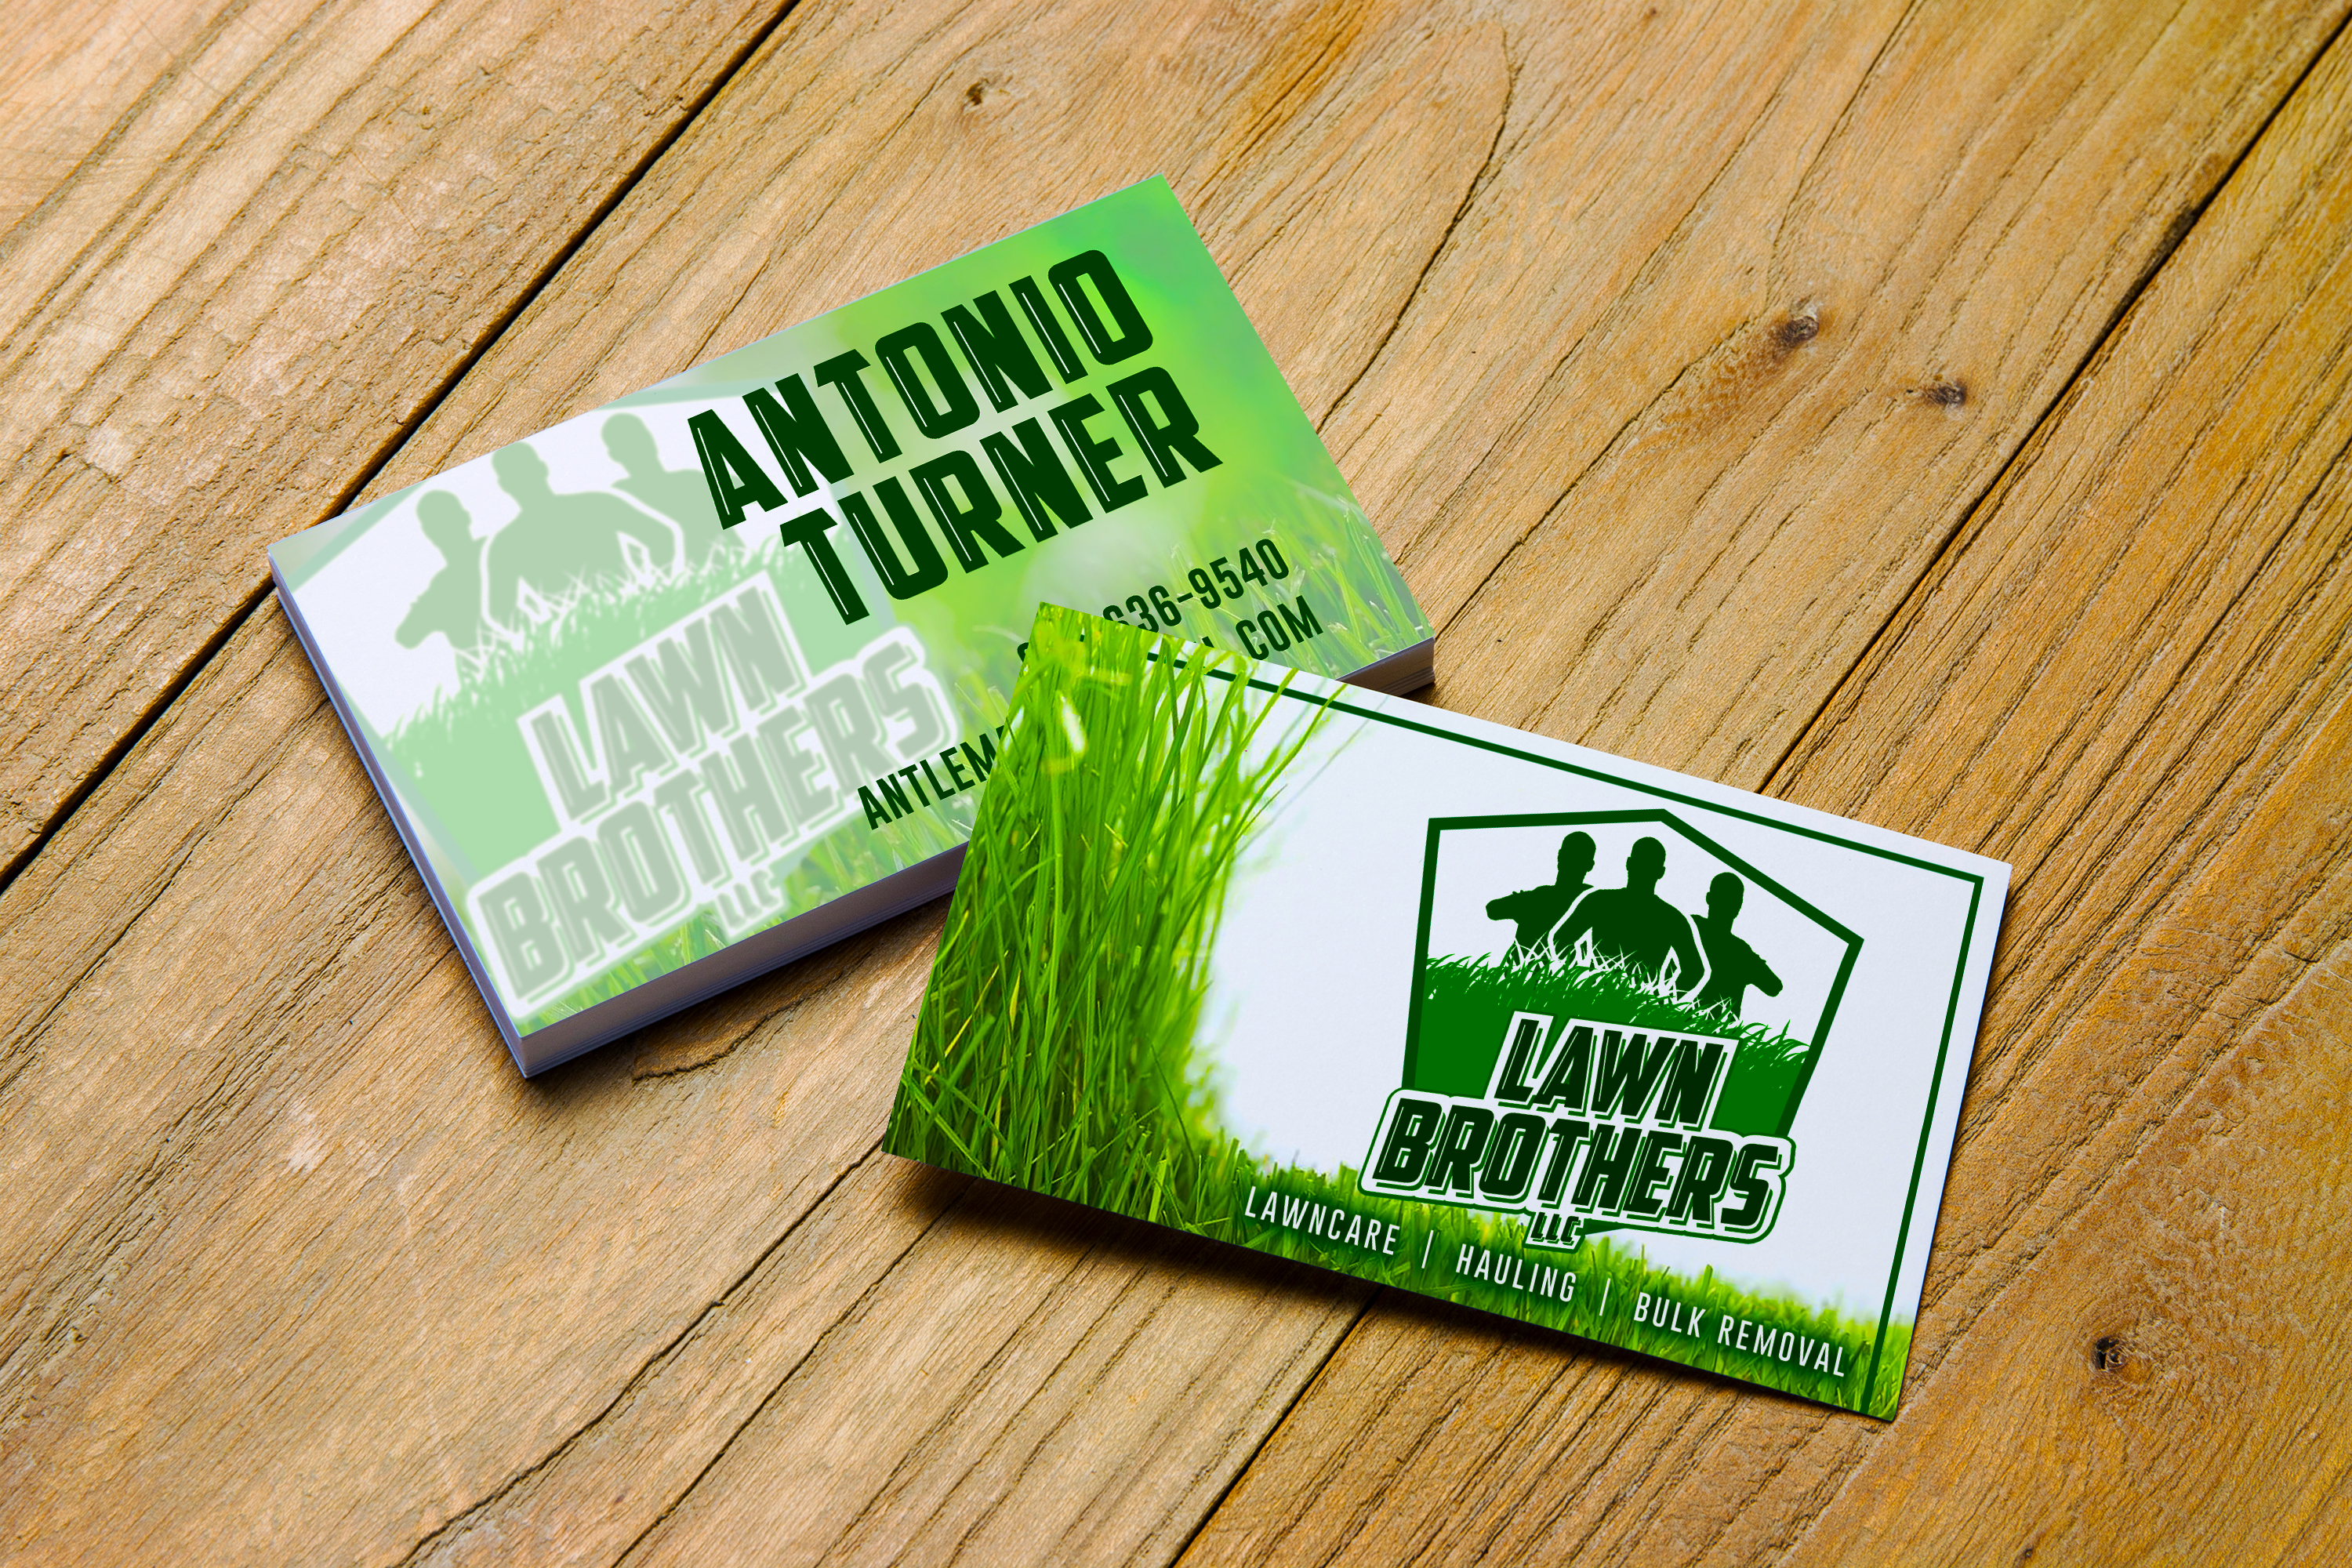 Lawn Brothers Business Cards